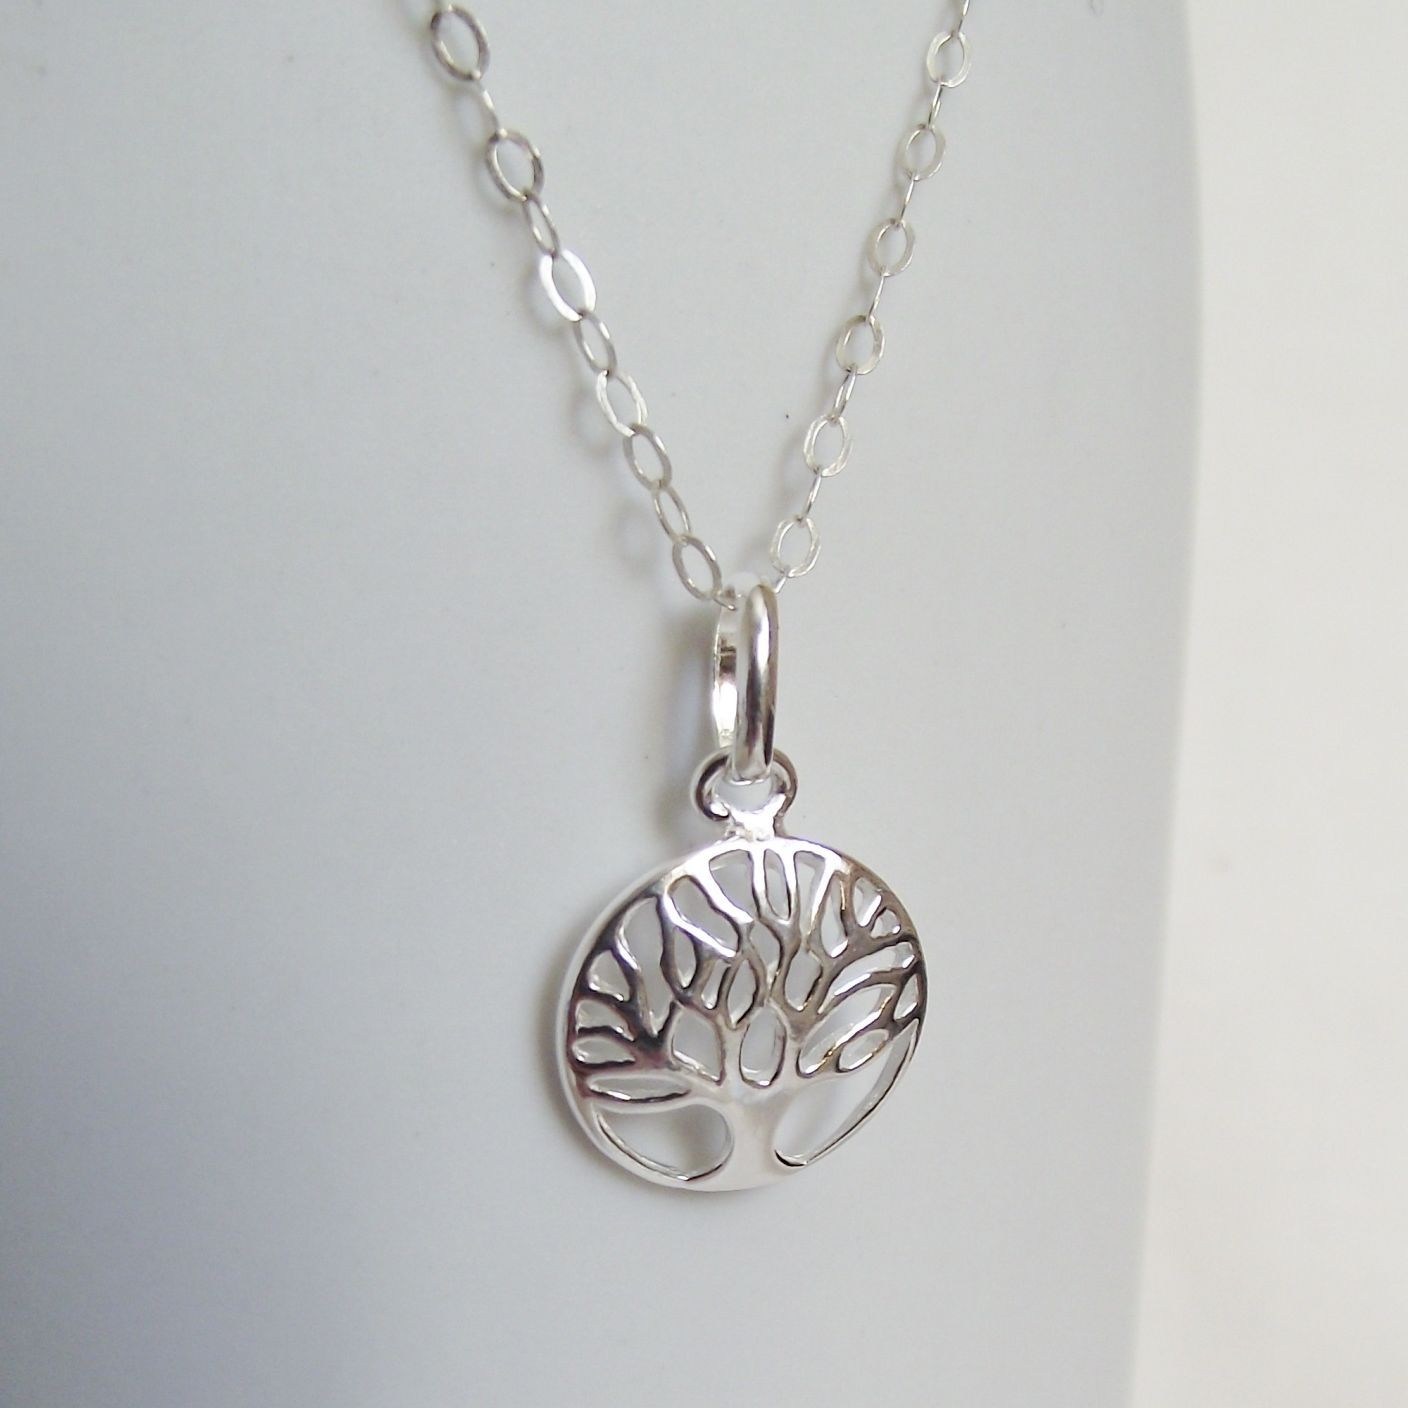 Handmade solid sterling silver tree of life pendant stunning gift gorgeous handmade solid sterling silver tree of life pendant stunning gift mozeypictures Gallery